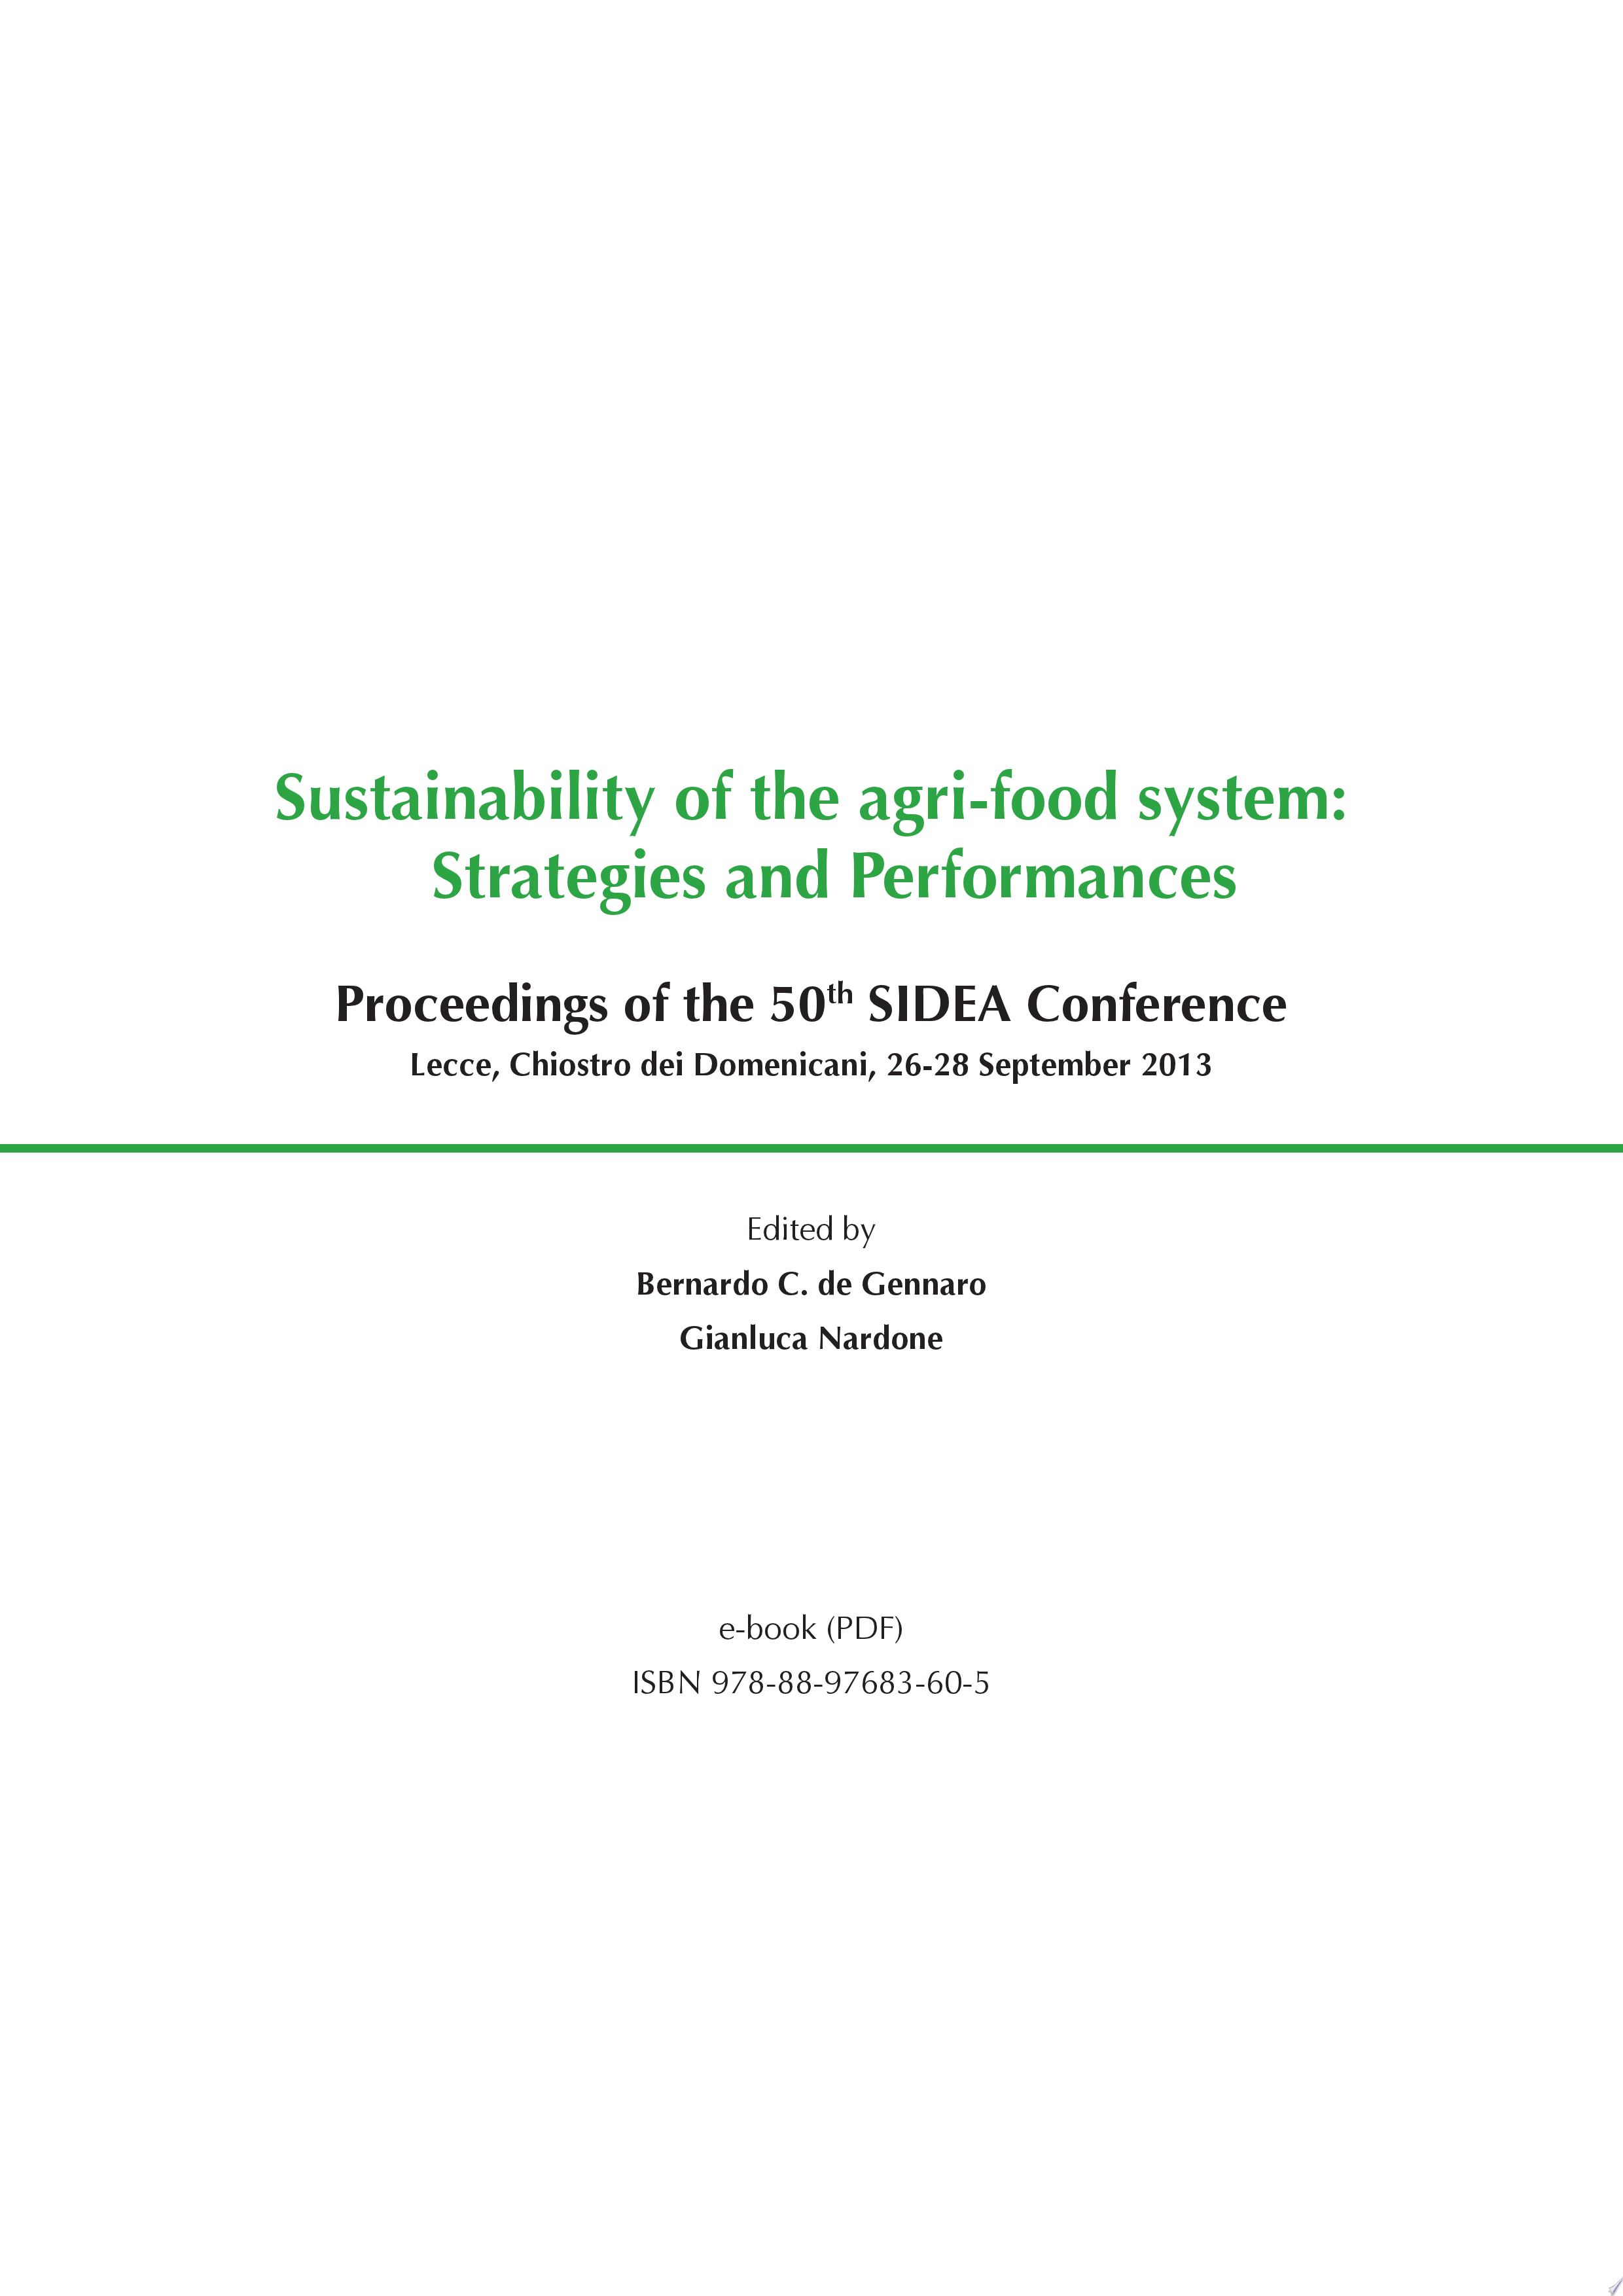 Sustainability of the Agri food System  Strategies and Performances